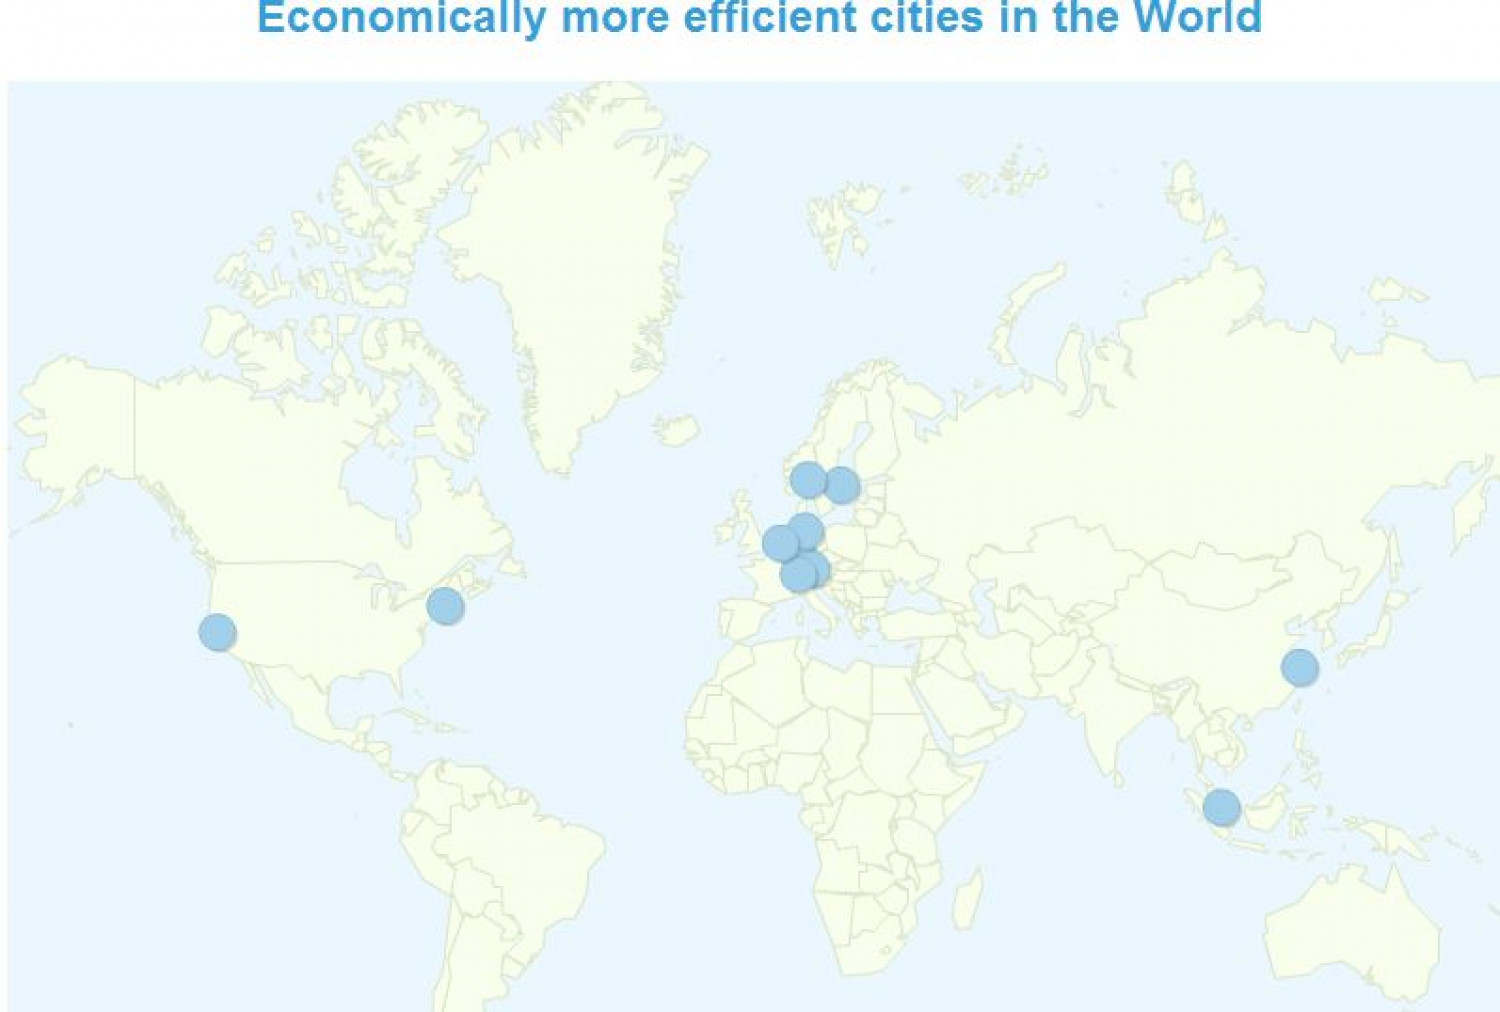 Economically more efficient cities in the World Infographic